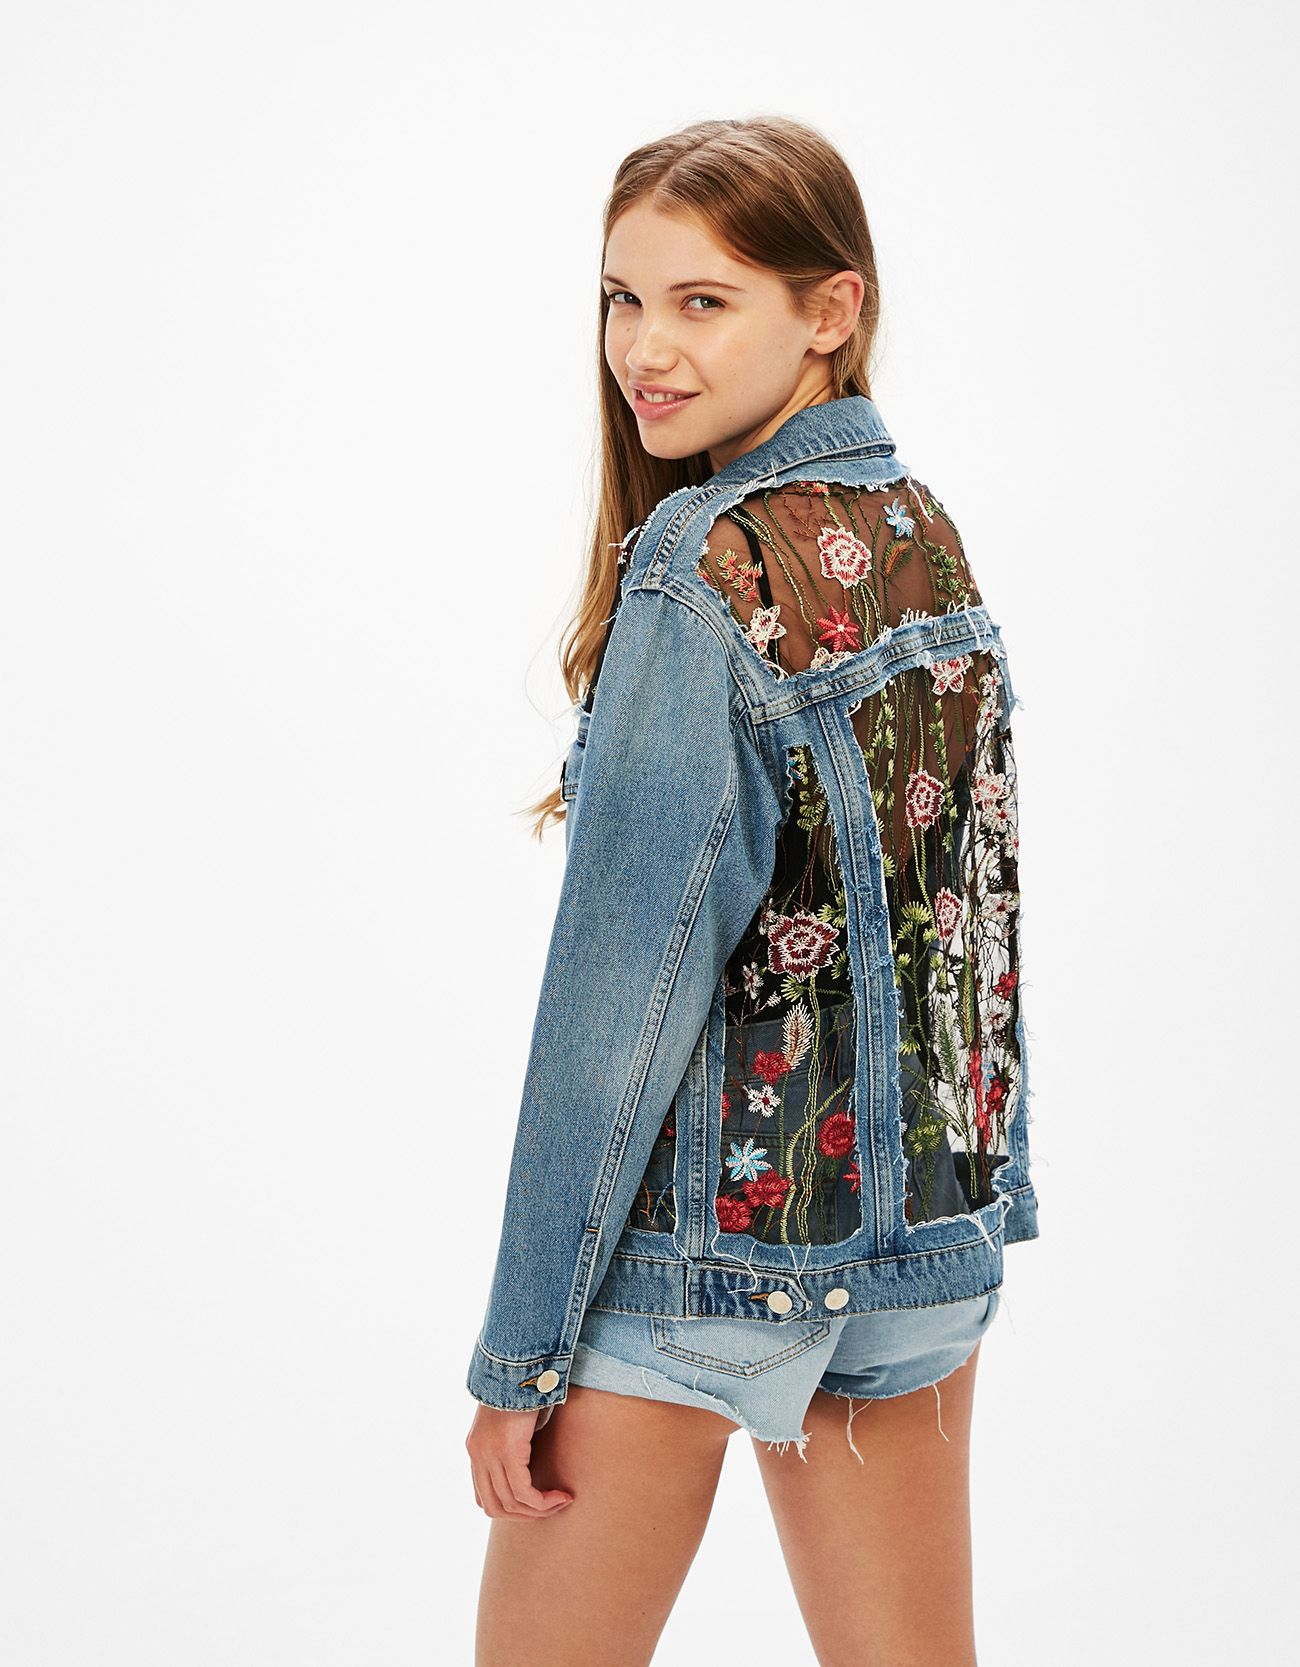 Tulle And Denim Jacket With Floral Embroidery Discover This And Many More Items In Bershka With New Products Every Wee Denim Jacket Jackets Embroidery Jackets [ 1667 x 1300 Pixel ]